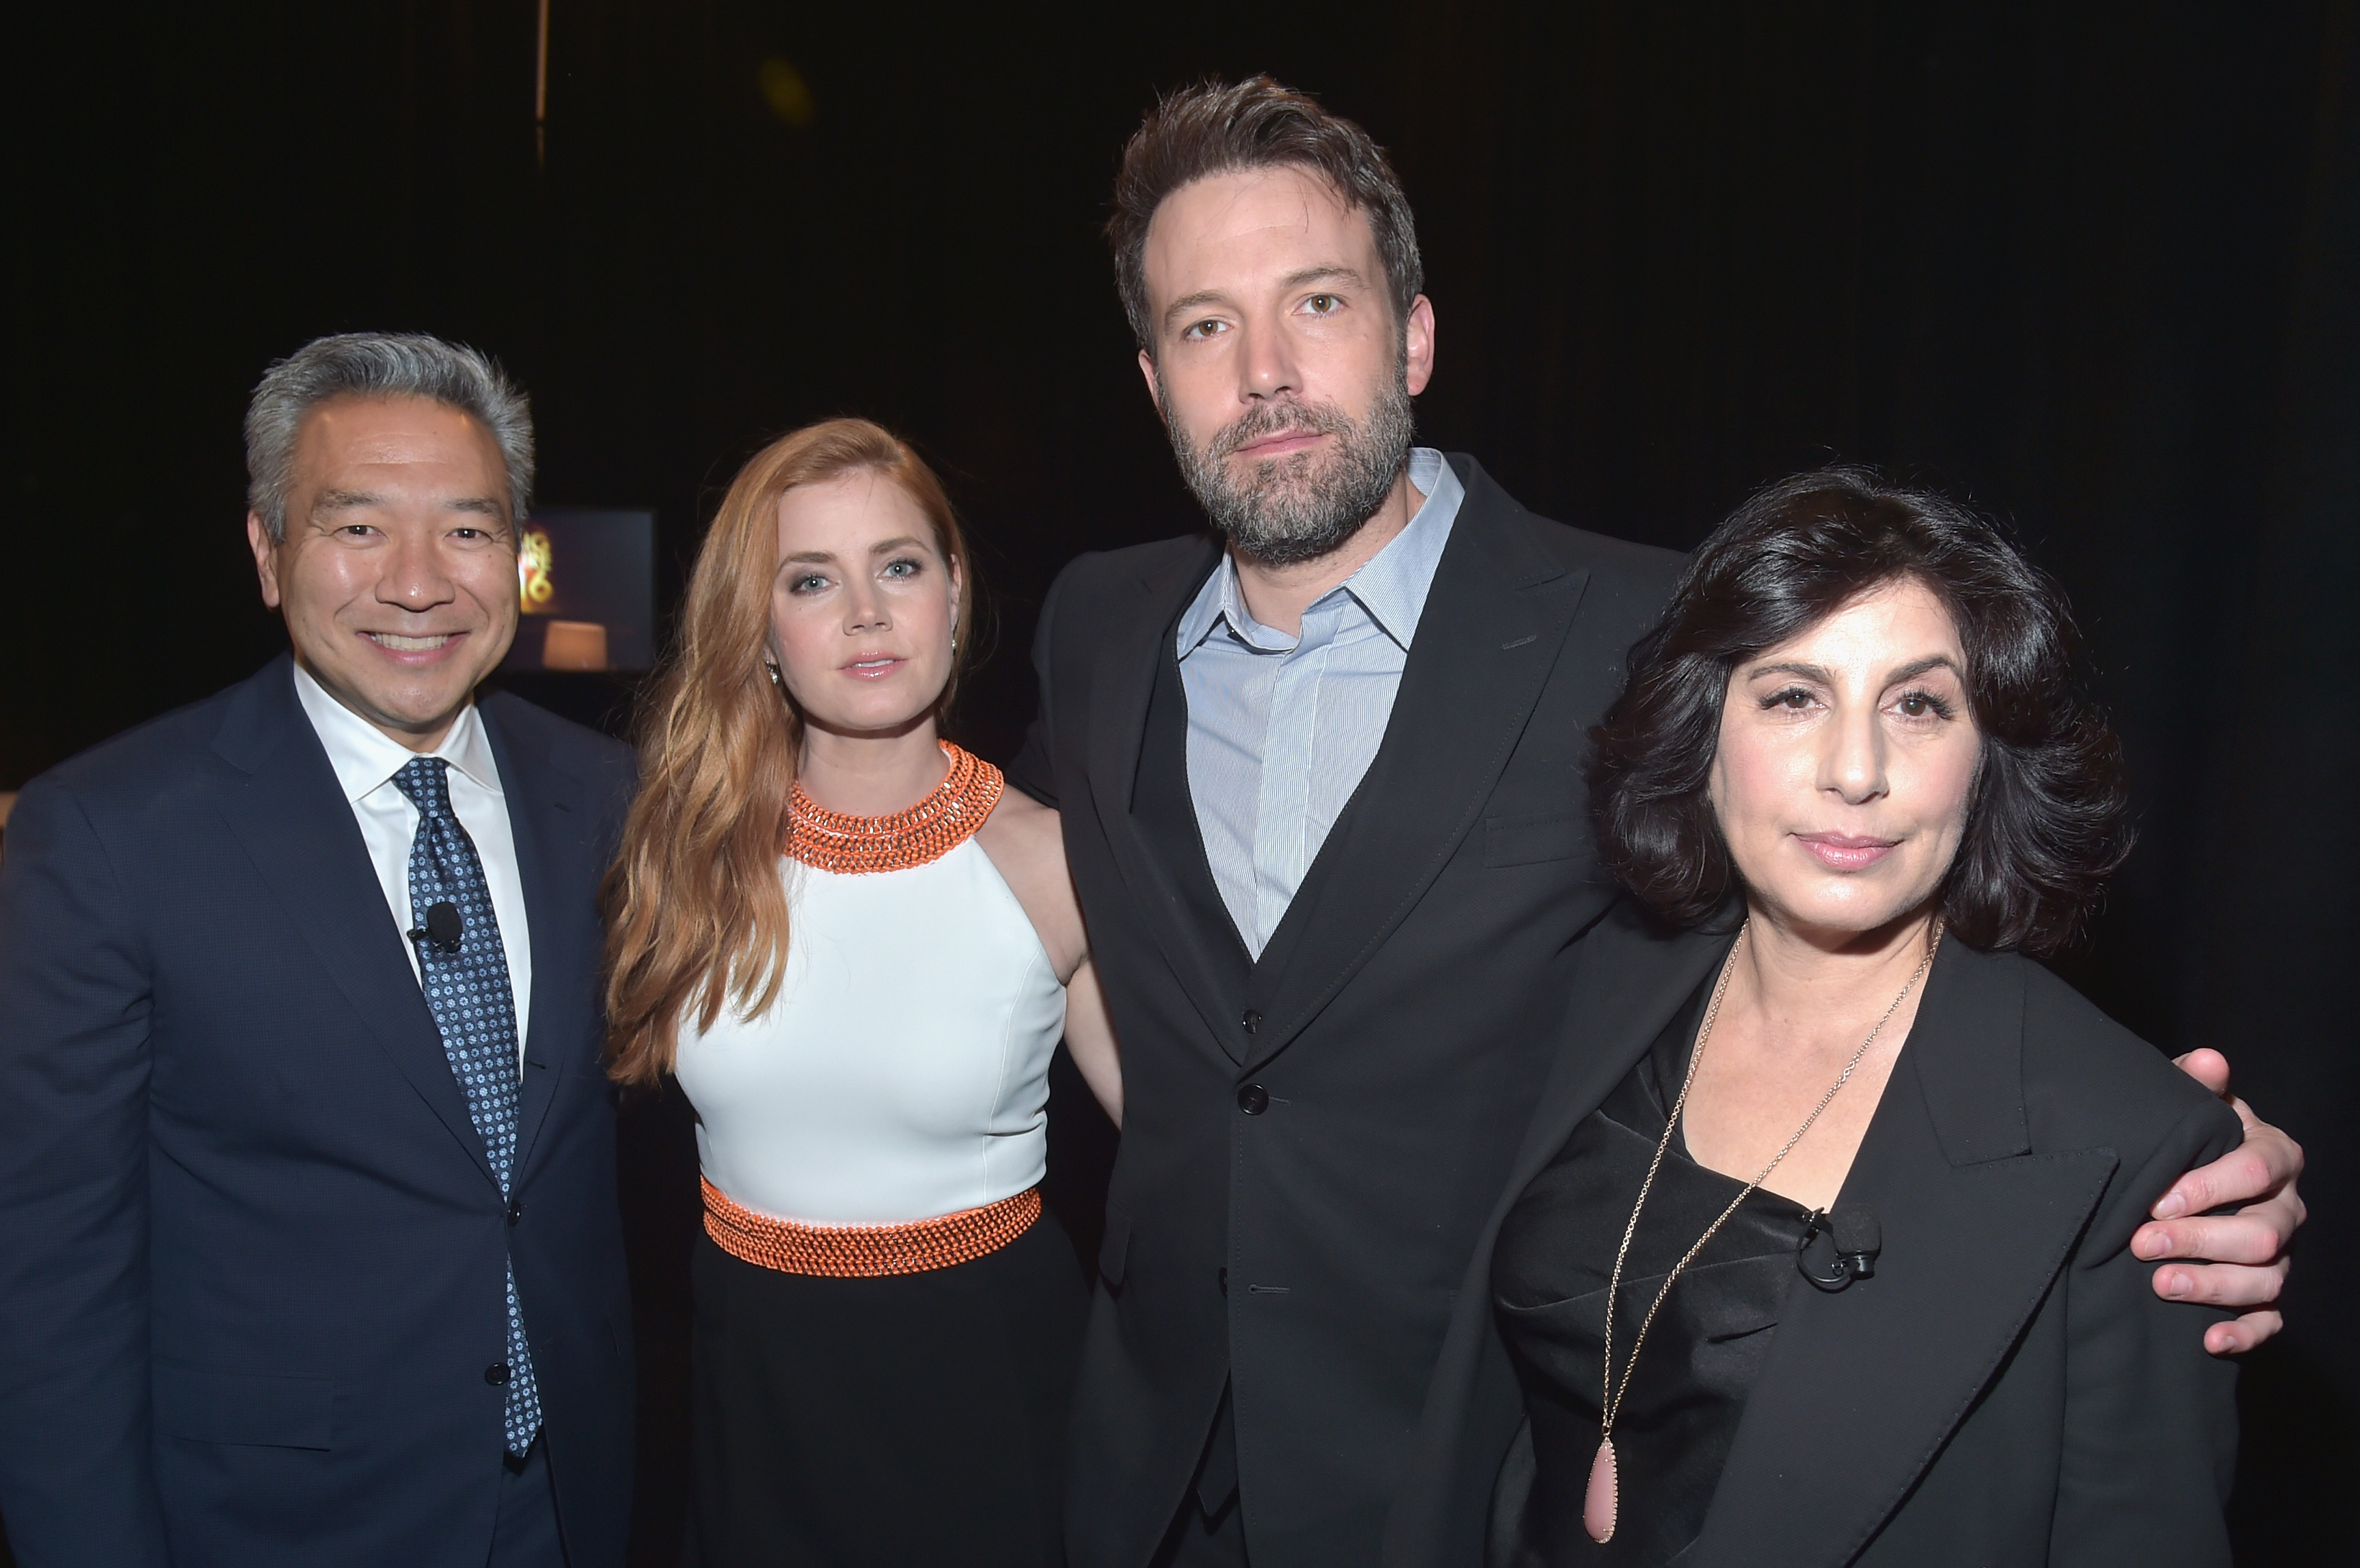 LAS VEGAS, NV - APRIL 12: (L-R) CEO and Chairman of Warner Bros. Kevin Tsujihara, actors Amy Adams, Ben Affleck and Warner Bros. Pictures President of Worldwide Marketing and Distribution Sue Kroll attend CinemaCon 2016 Warner Bros. Pictures Invites You to ?The Big Picture?, an Exclusive Presentation Highlighting the Summer of 2016 and Beyond at The Colosseum at Caesars Palace during CinemaCon, the official convention of the National Association of Theatre Owners, on April 12, 2016 in Las Vegas, Nevada.   Alberto E. Rodriguez/Getty Images for CinemaCon/AFP